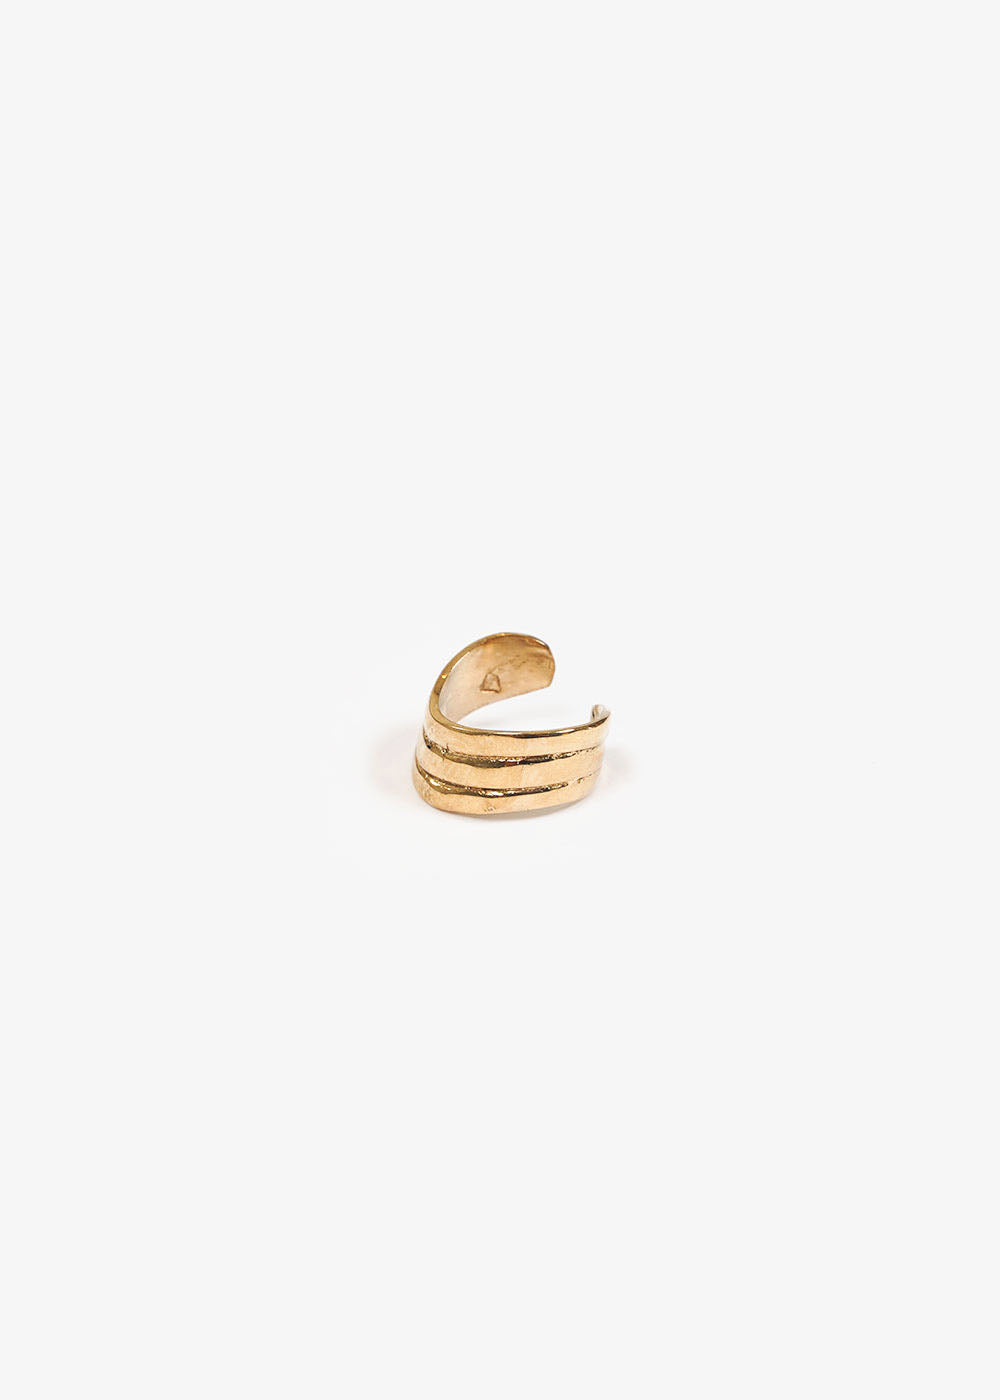 LUINY Waves Ear Cuff — Shop sustainable fashion and slow fashion at New Classics Studios